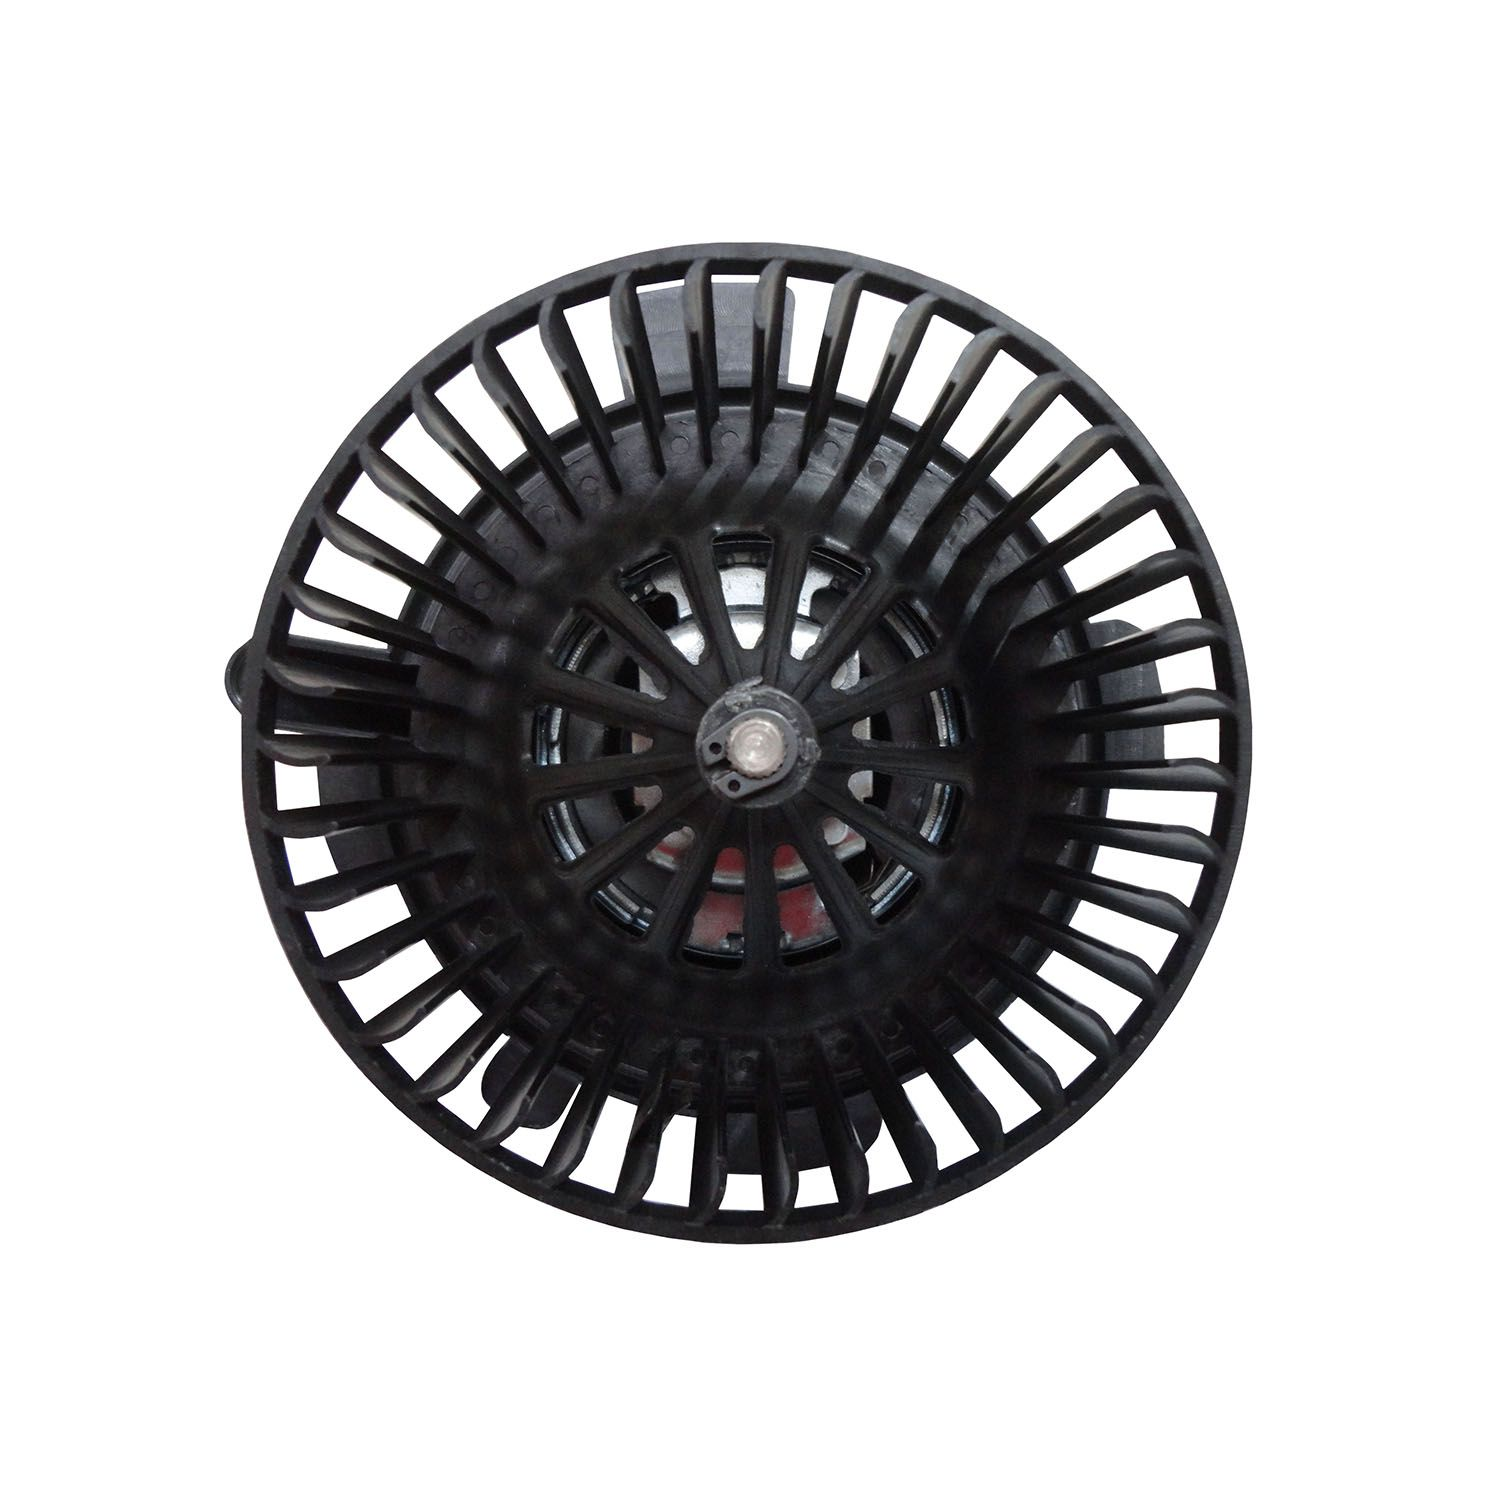 Ventilador Interno do Citroen C4 Pallas - 12V